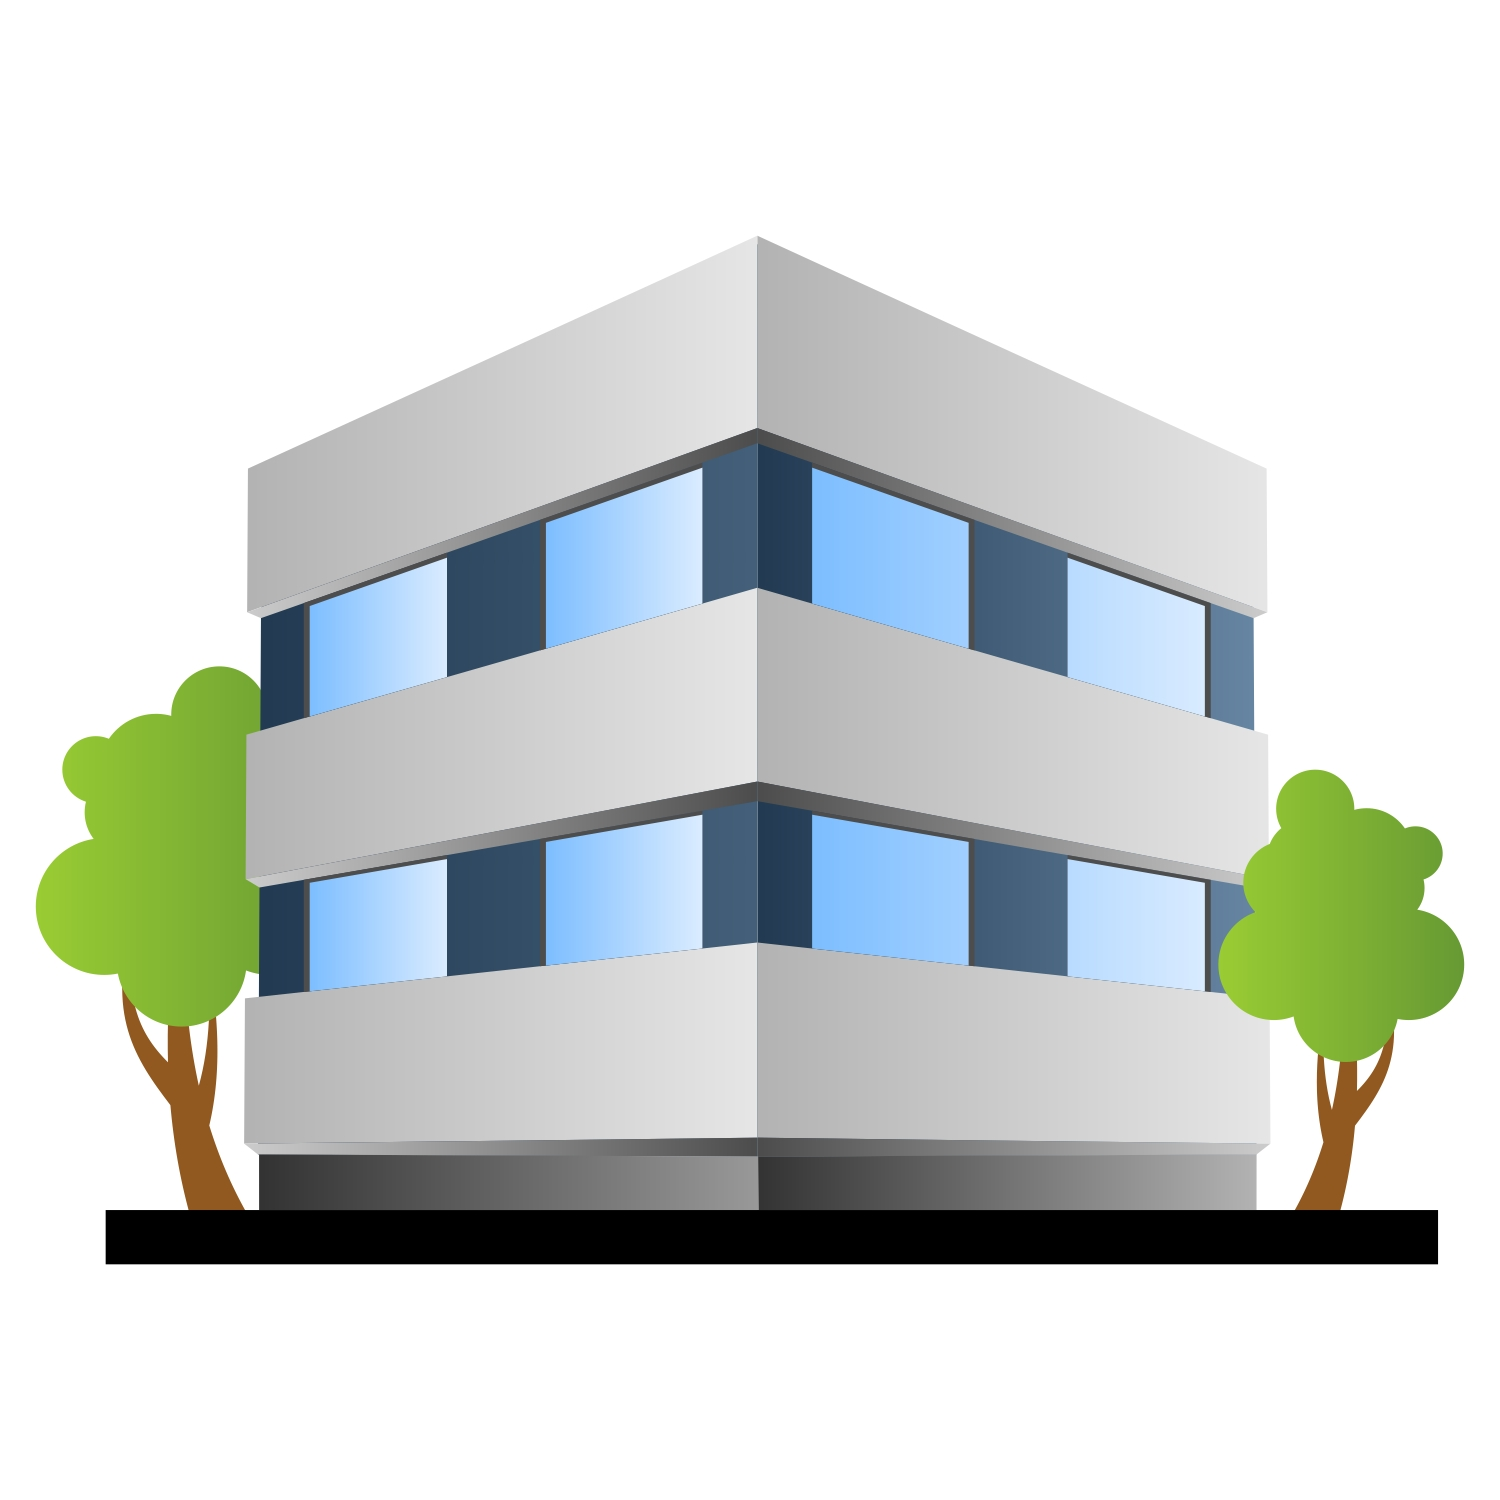 Building clipart business building. Free download best